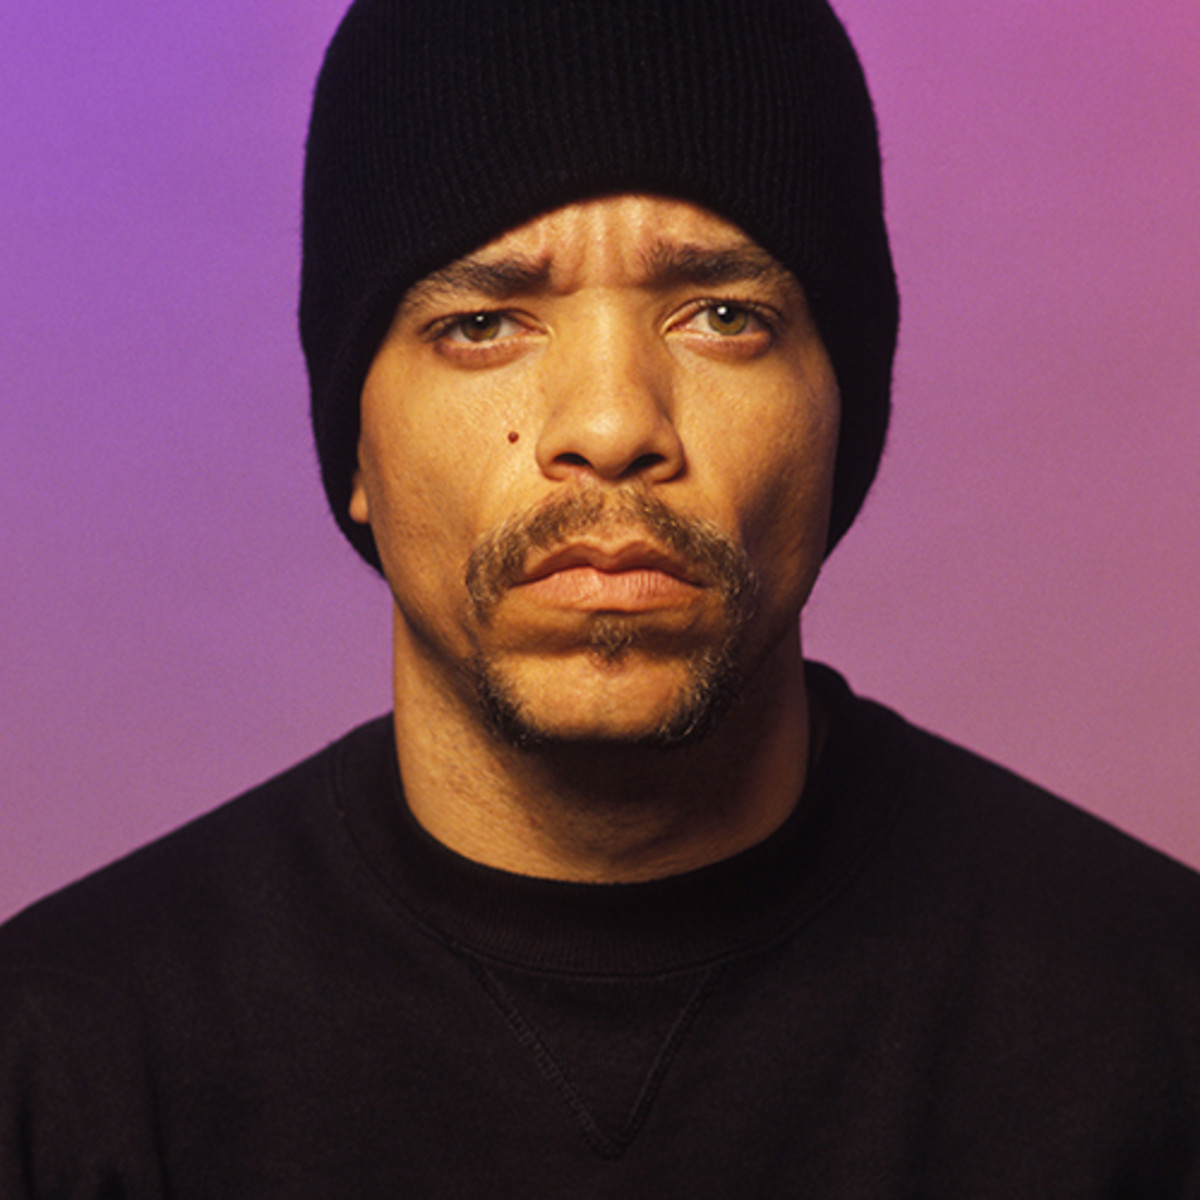 Ice t most popular song